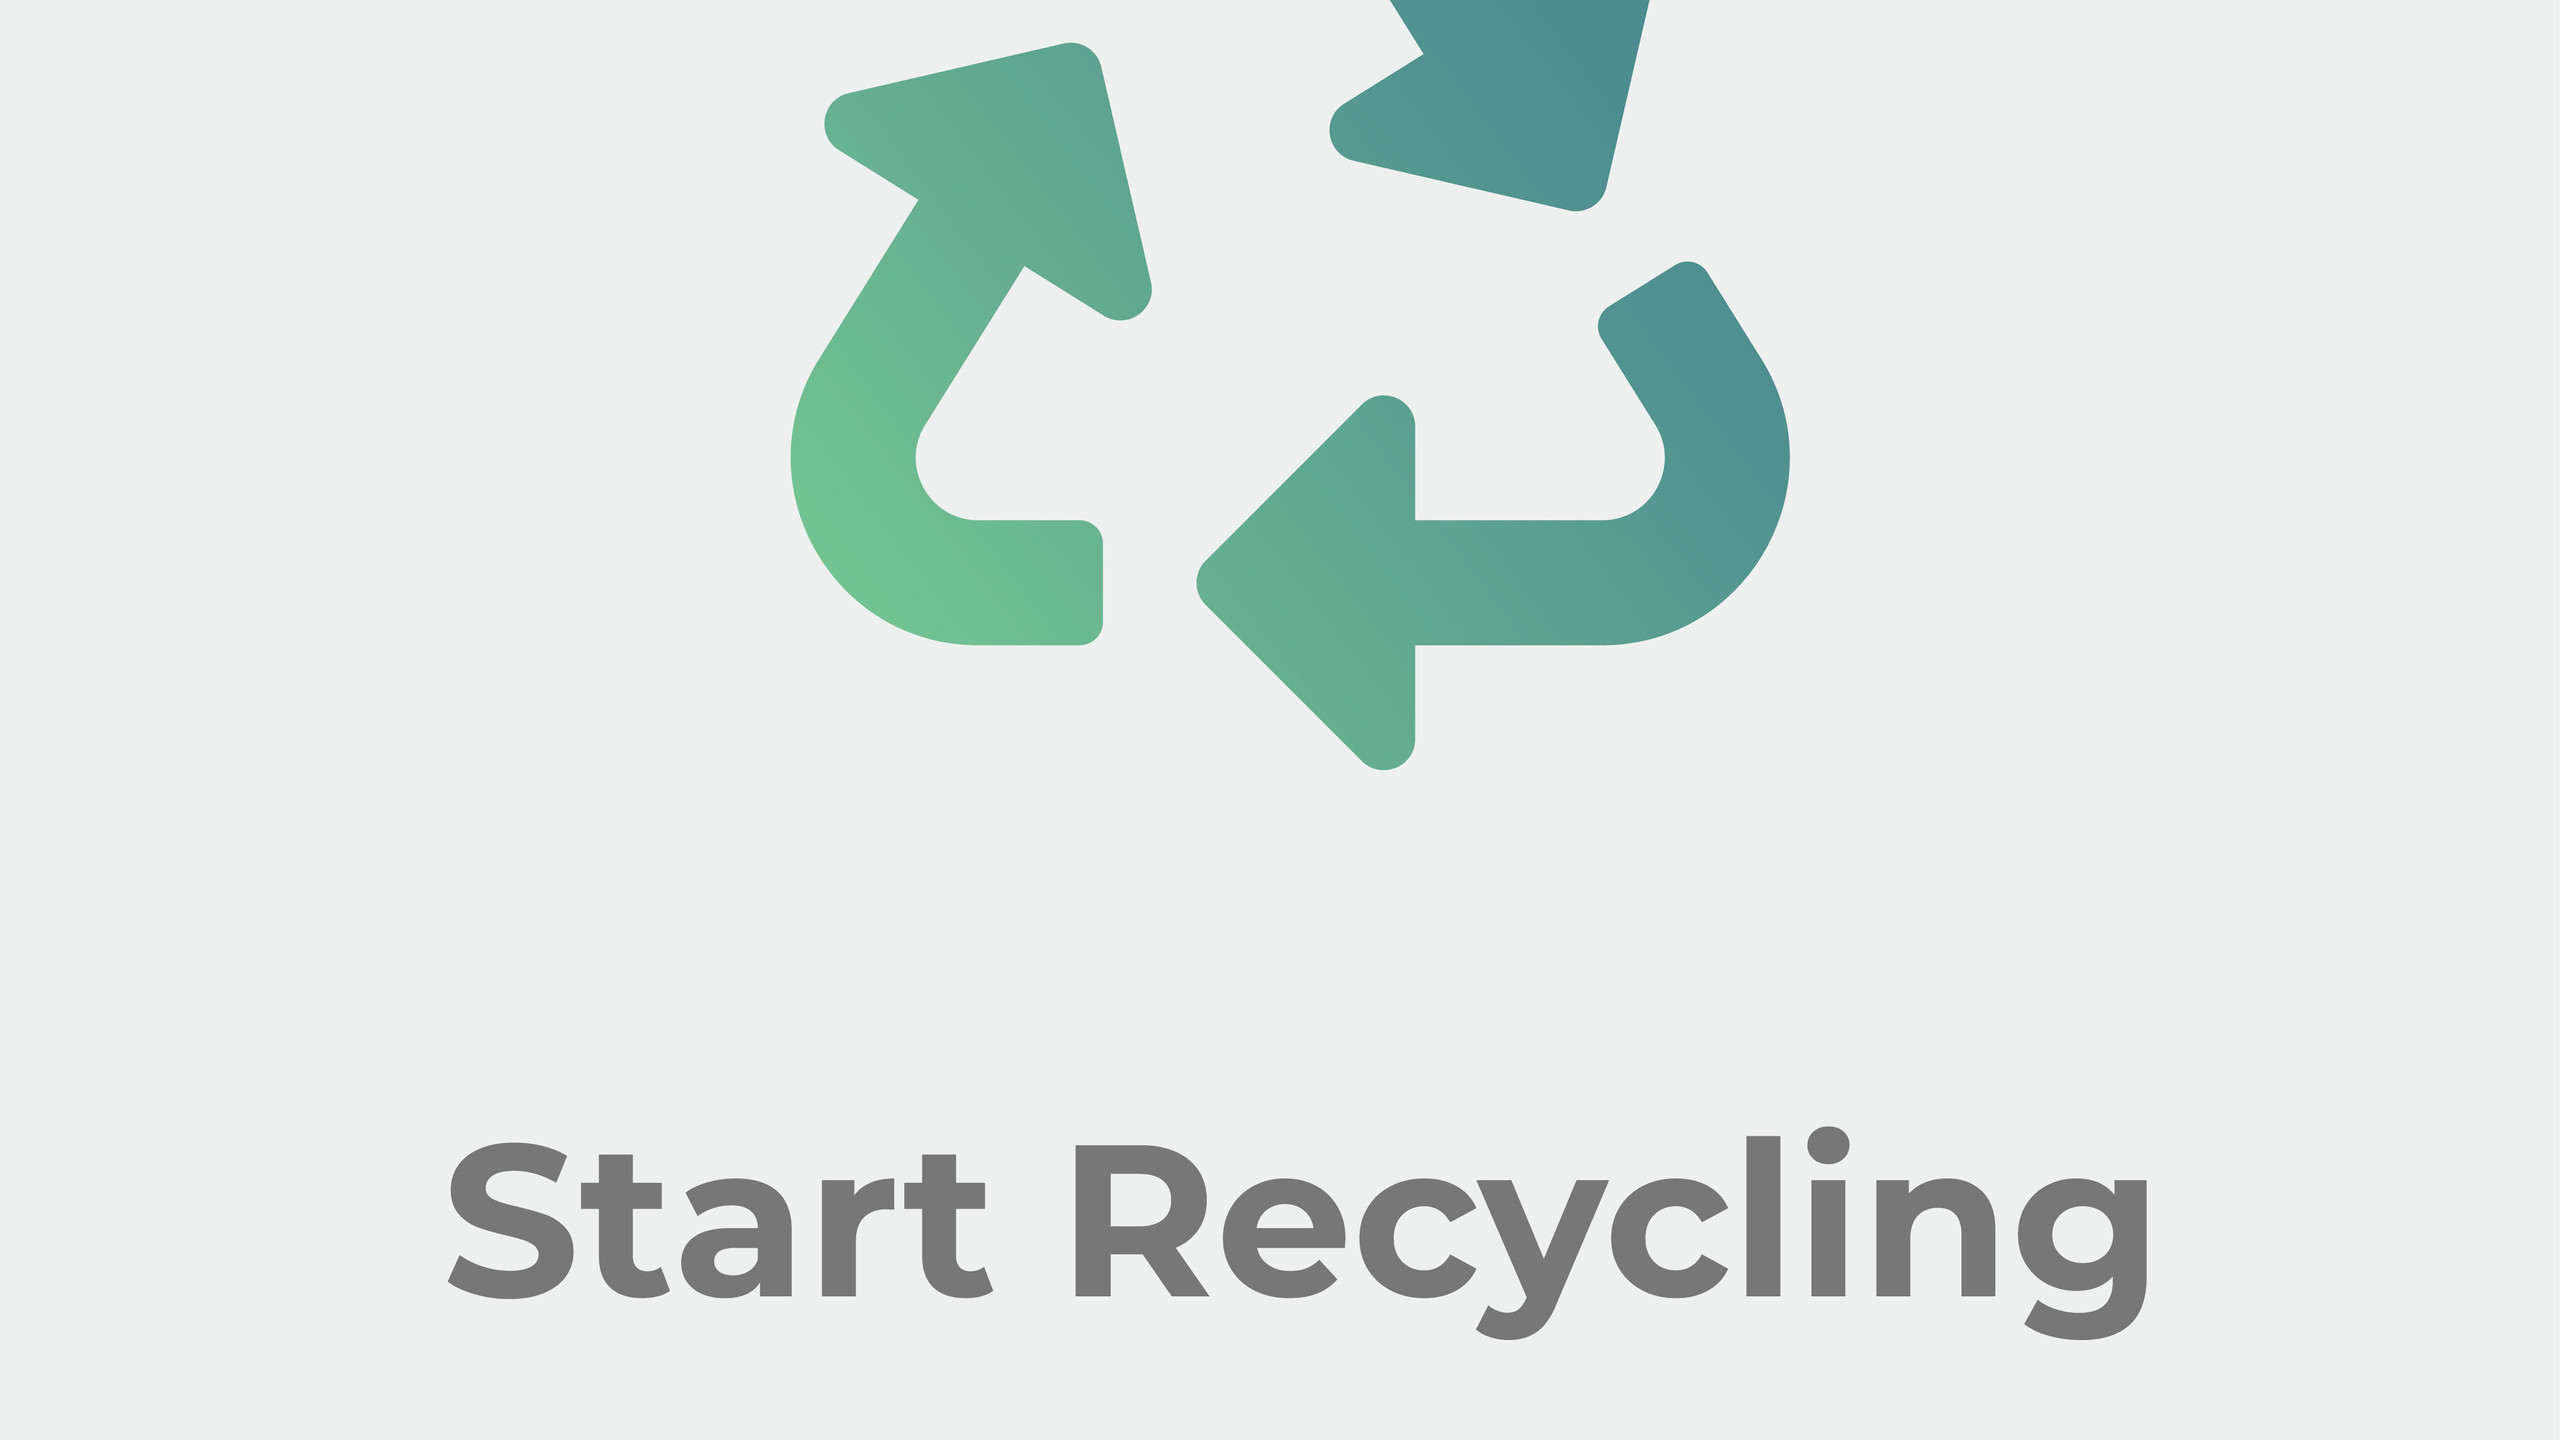 10 - Start Recycling Prompt